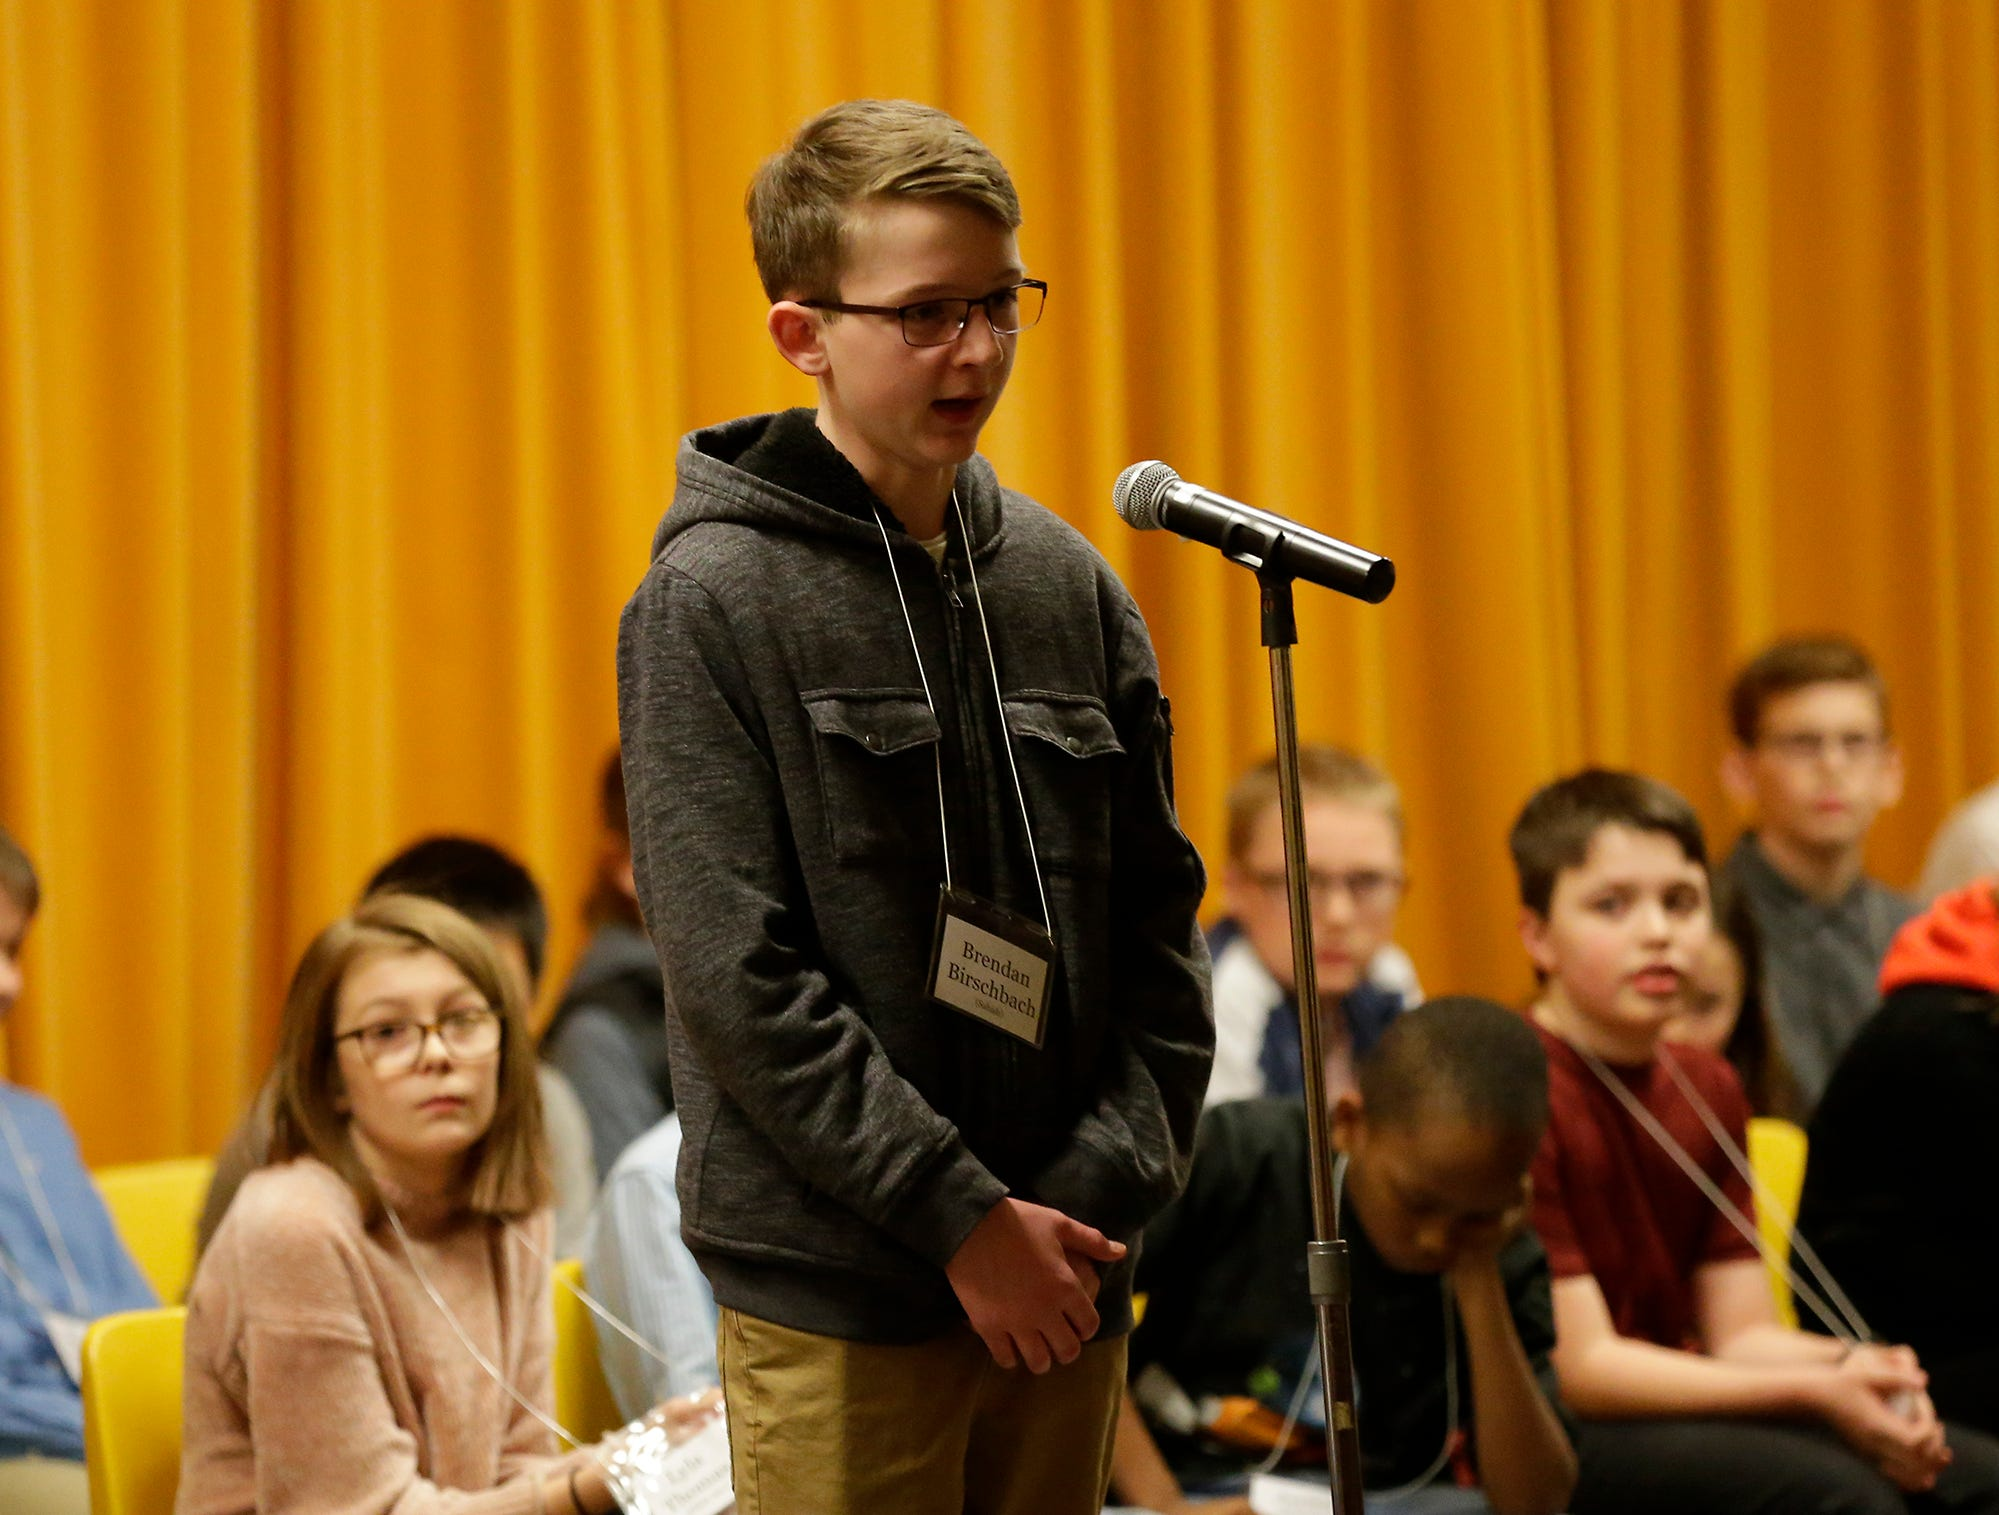 Brendan Birschbach of Sabish competes in the Fond du Lac citywide spelling bee Tuesday, February 26, 2019 at These Middle School in Fond du Lac, Wis. Doug Raflik/USA TODAY NETWORK-Wisconsin